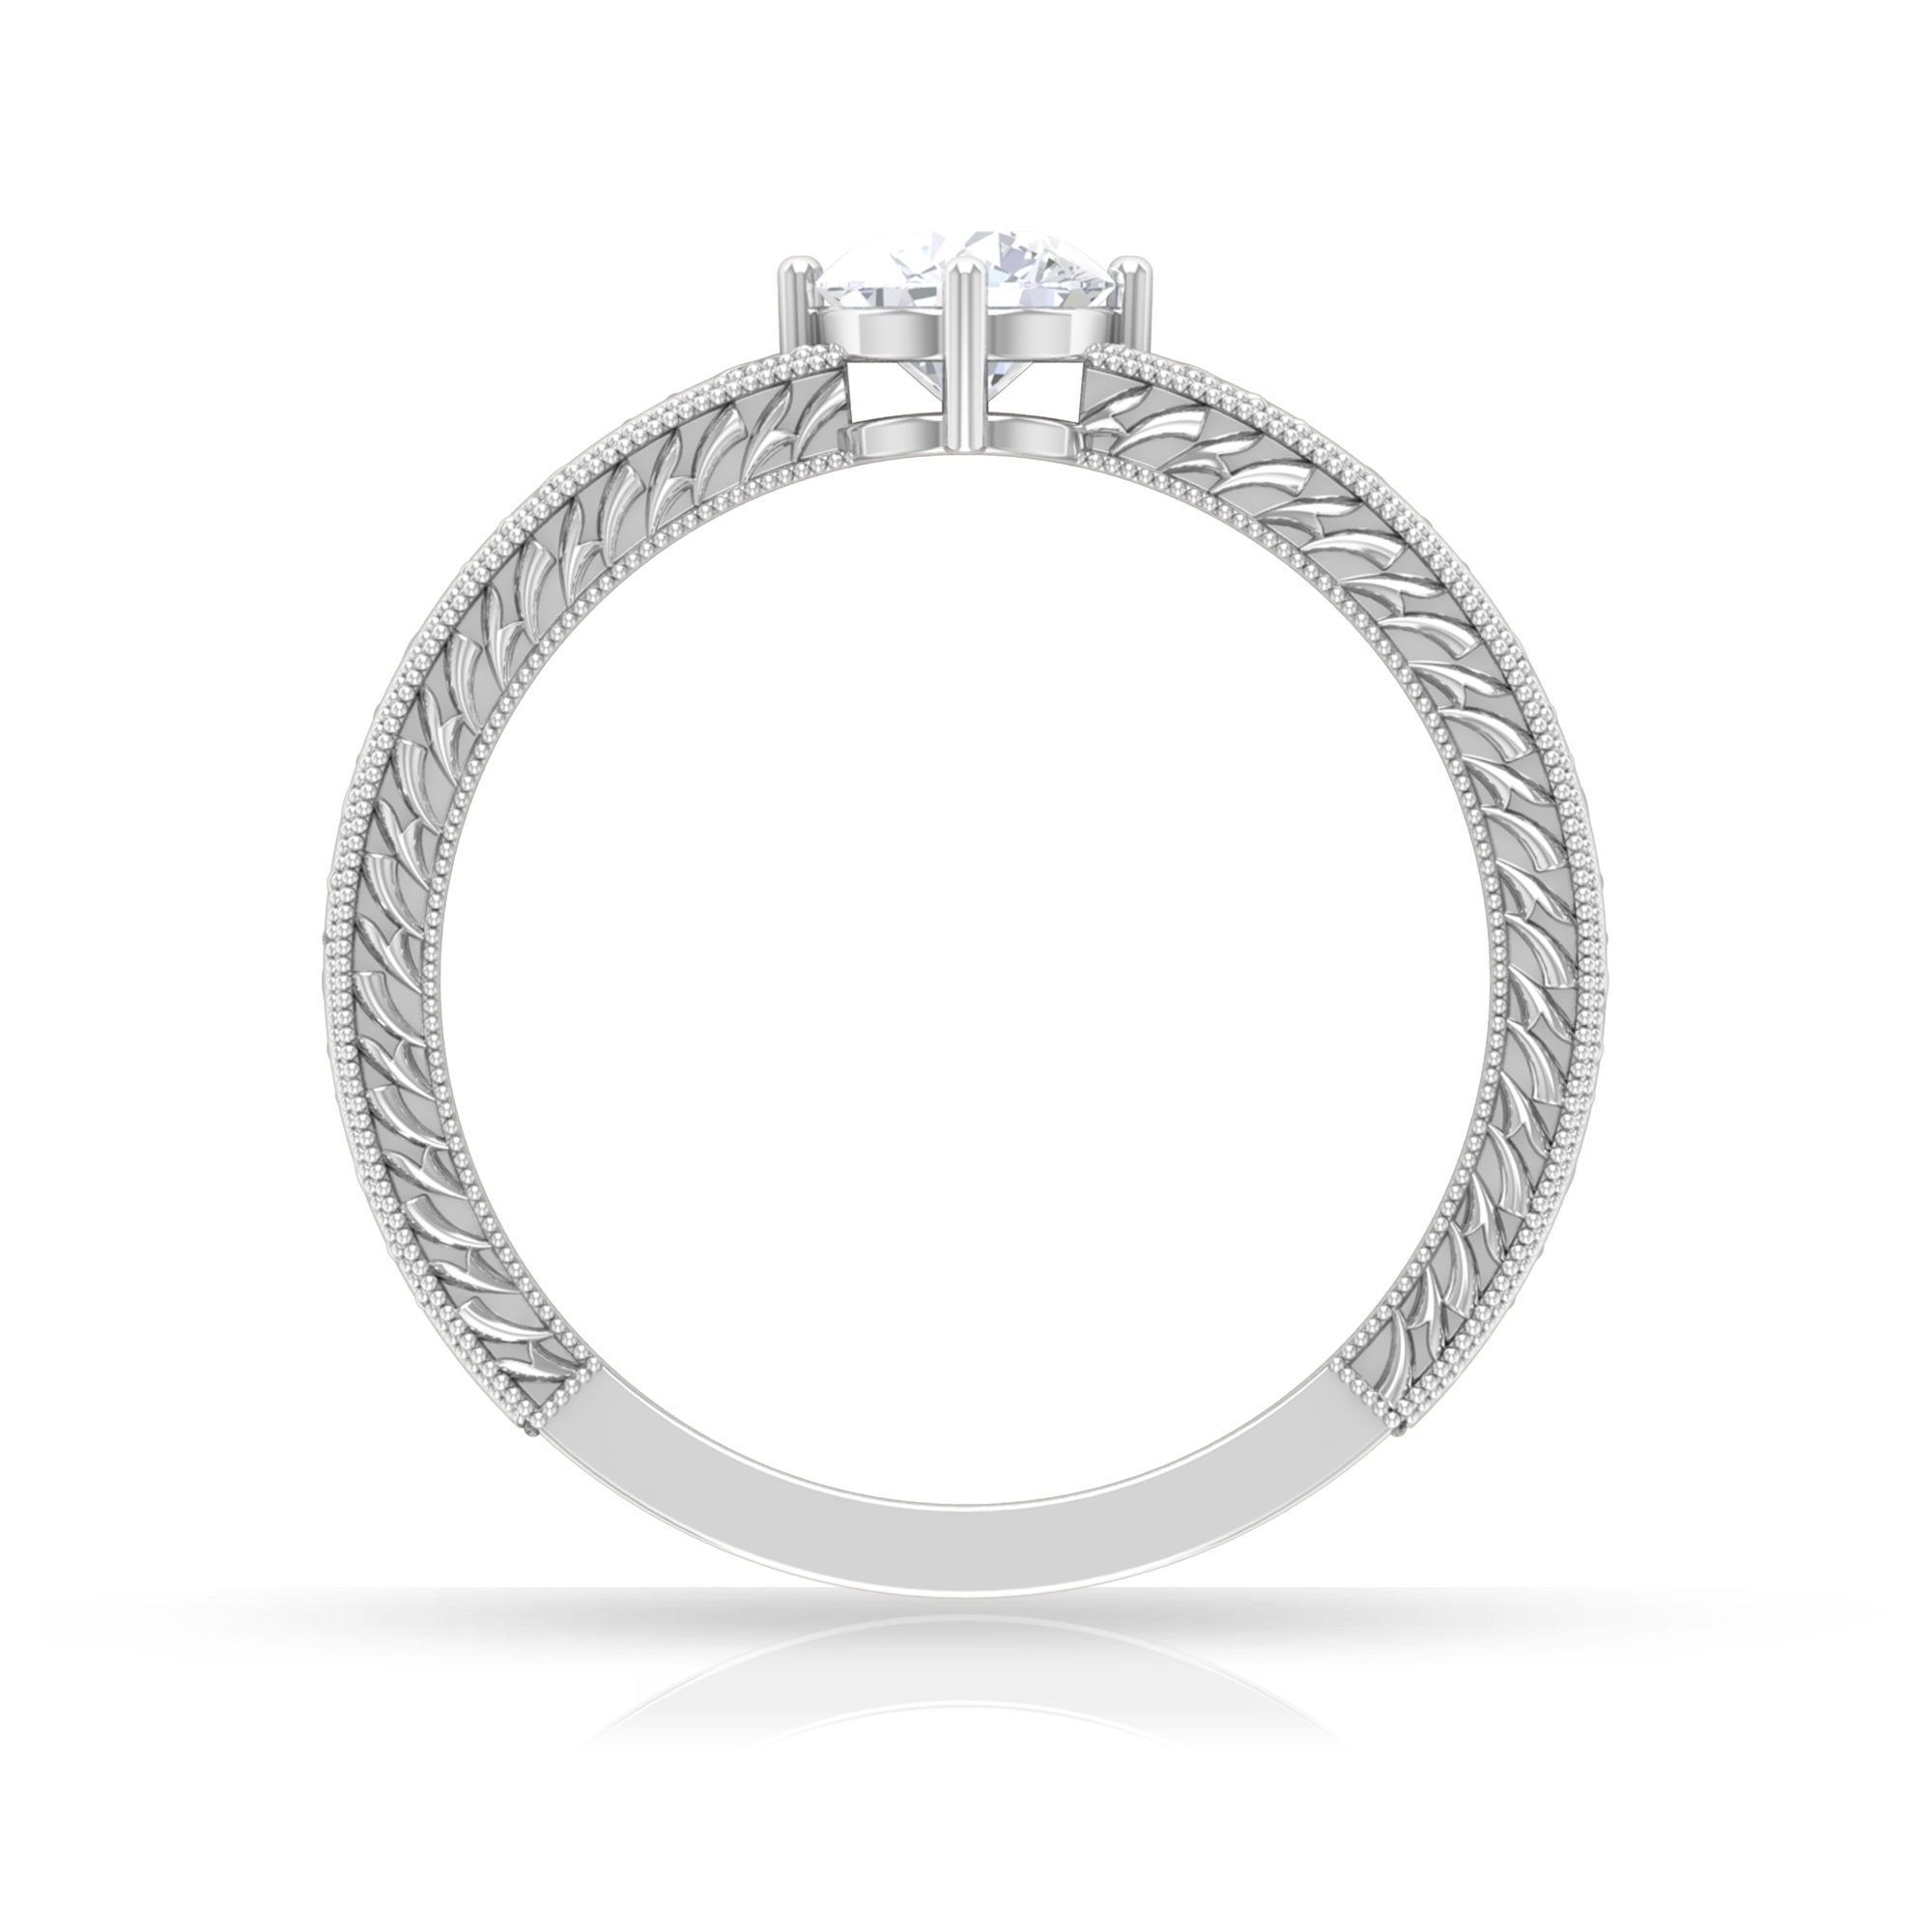 5 MM Round Cut Diamond Solitaire Ring in 4 Prong Diagonal Setting with Engraved Details